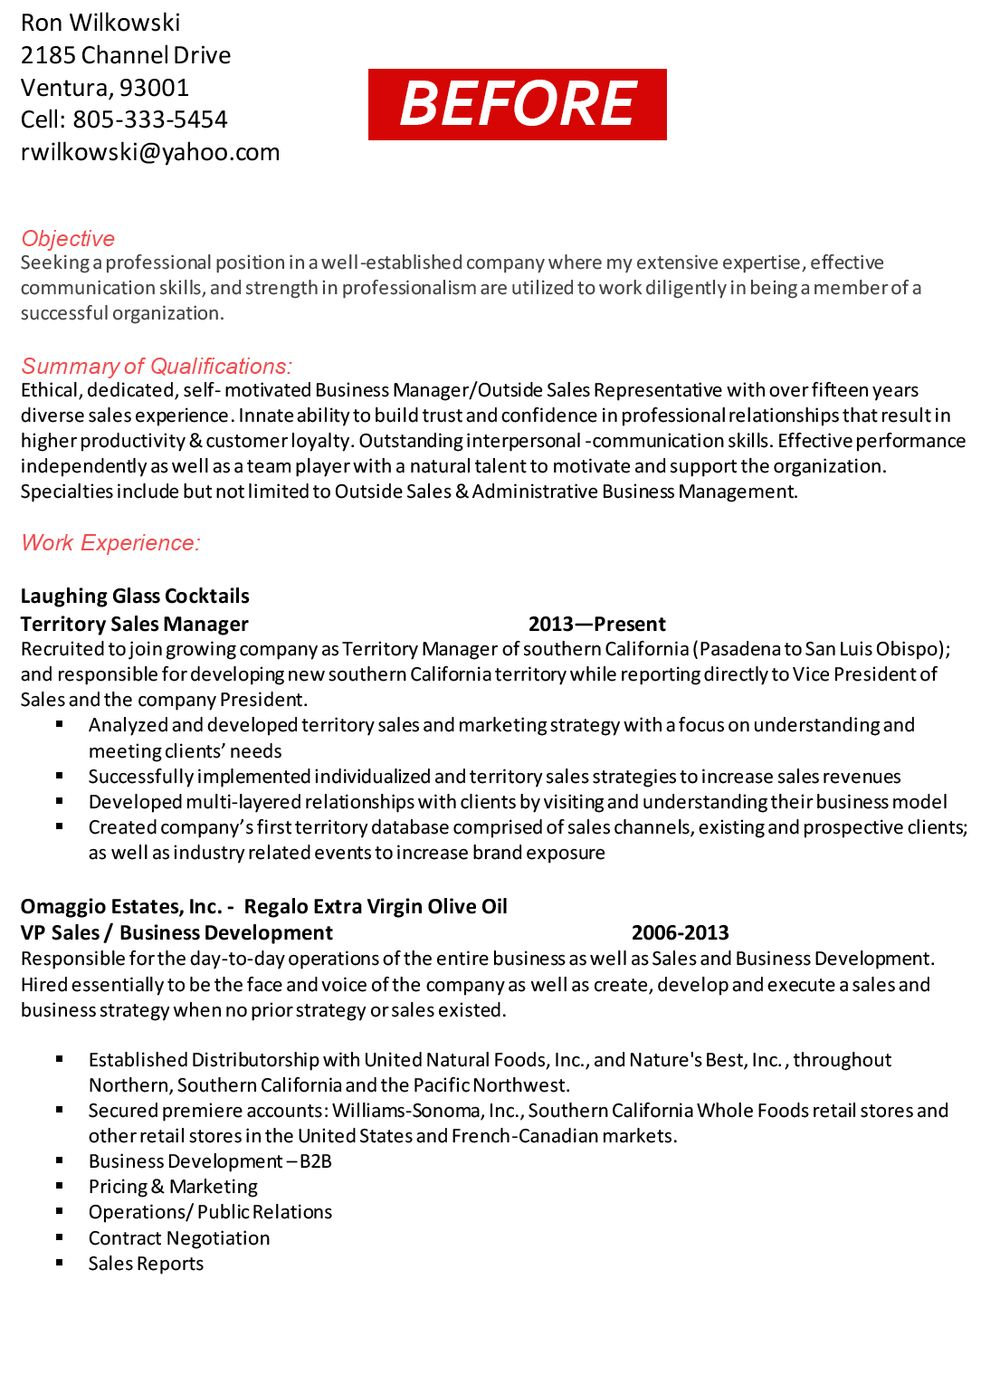 Sample Resumes — Resume Scribes